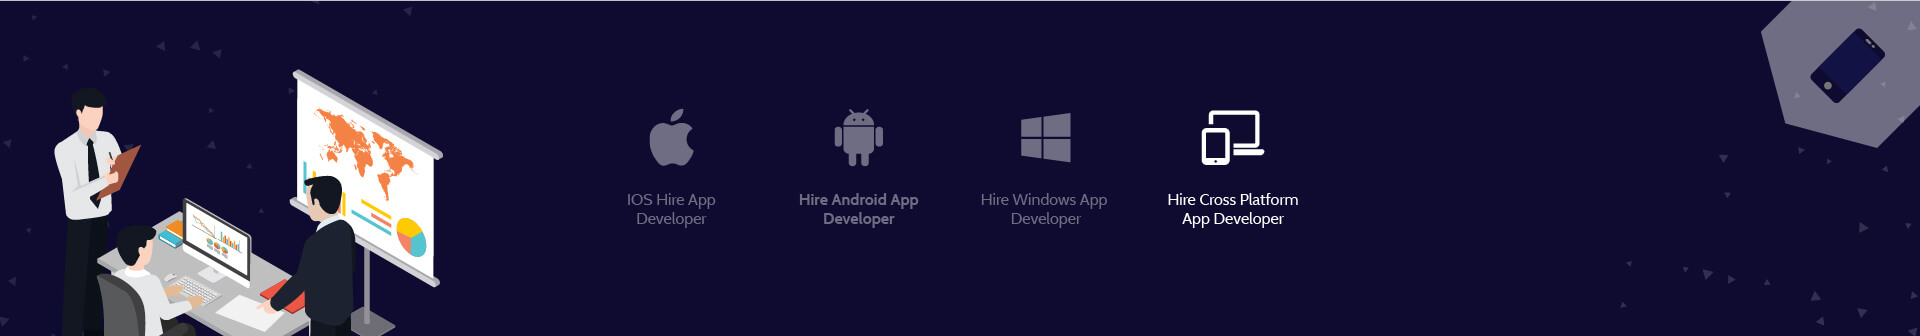 Hire Cross Platform App Developer